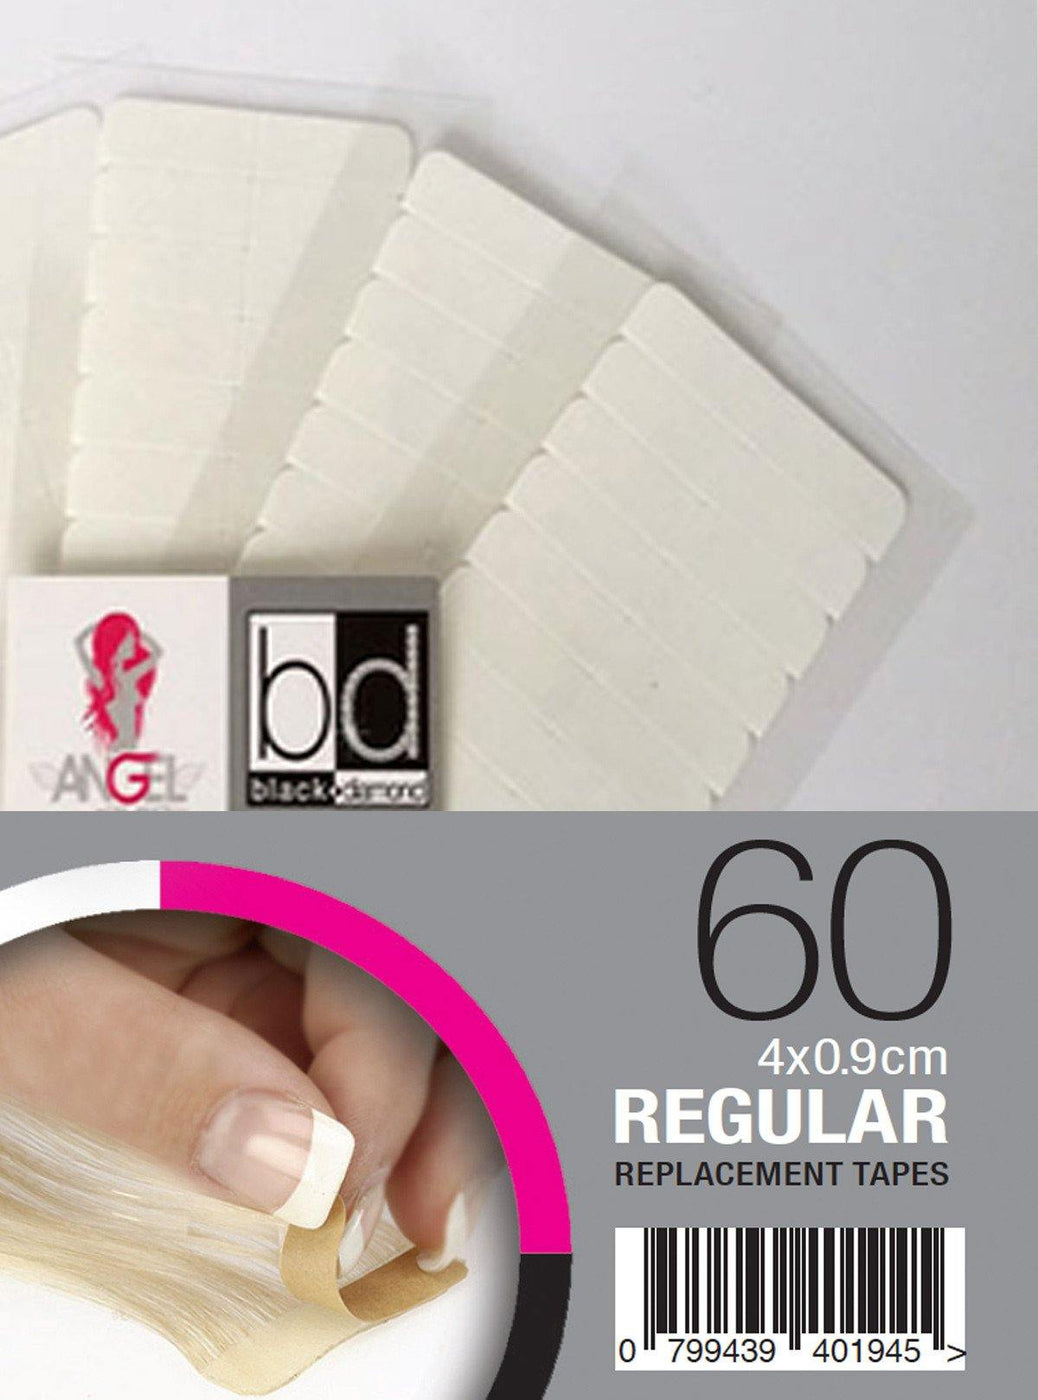 Angel Replacement Tapes Regular 4x9cm 60pk - Norris Hair & Beauty